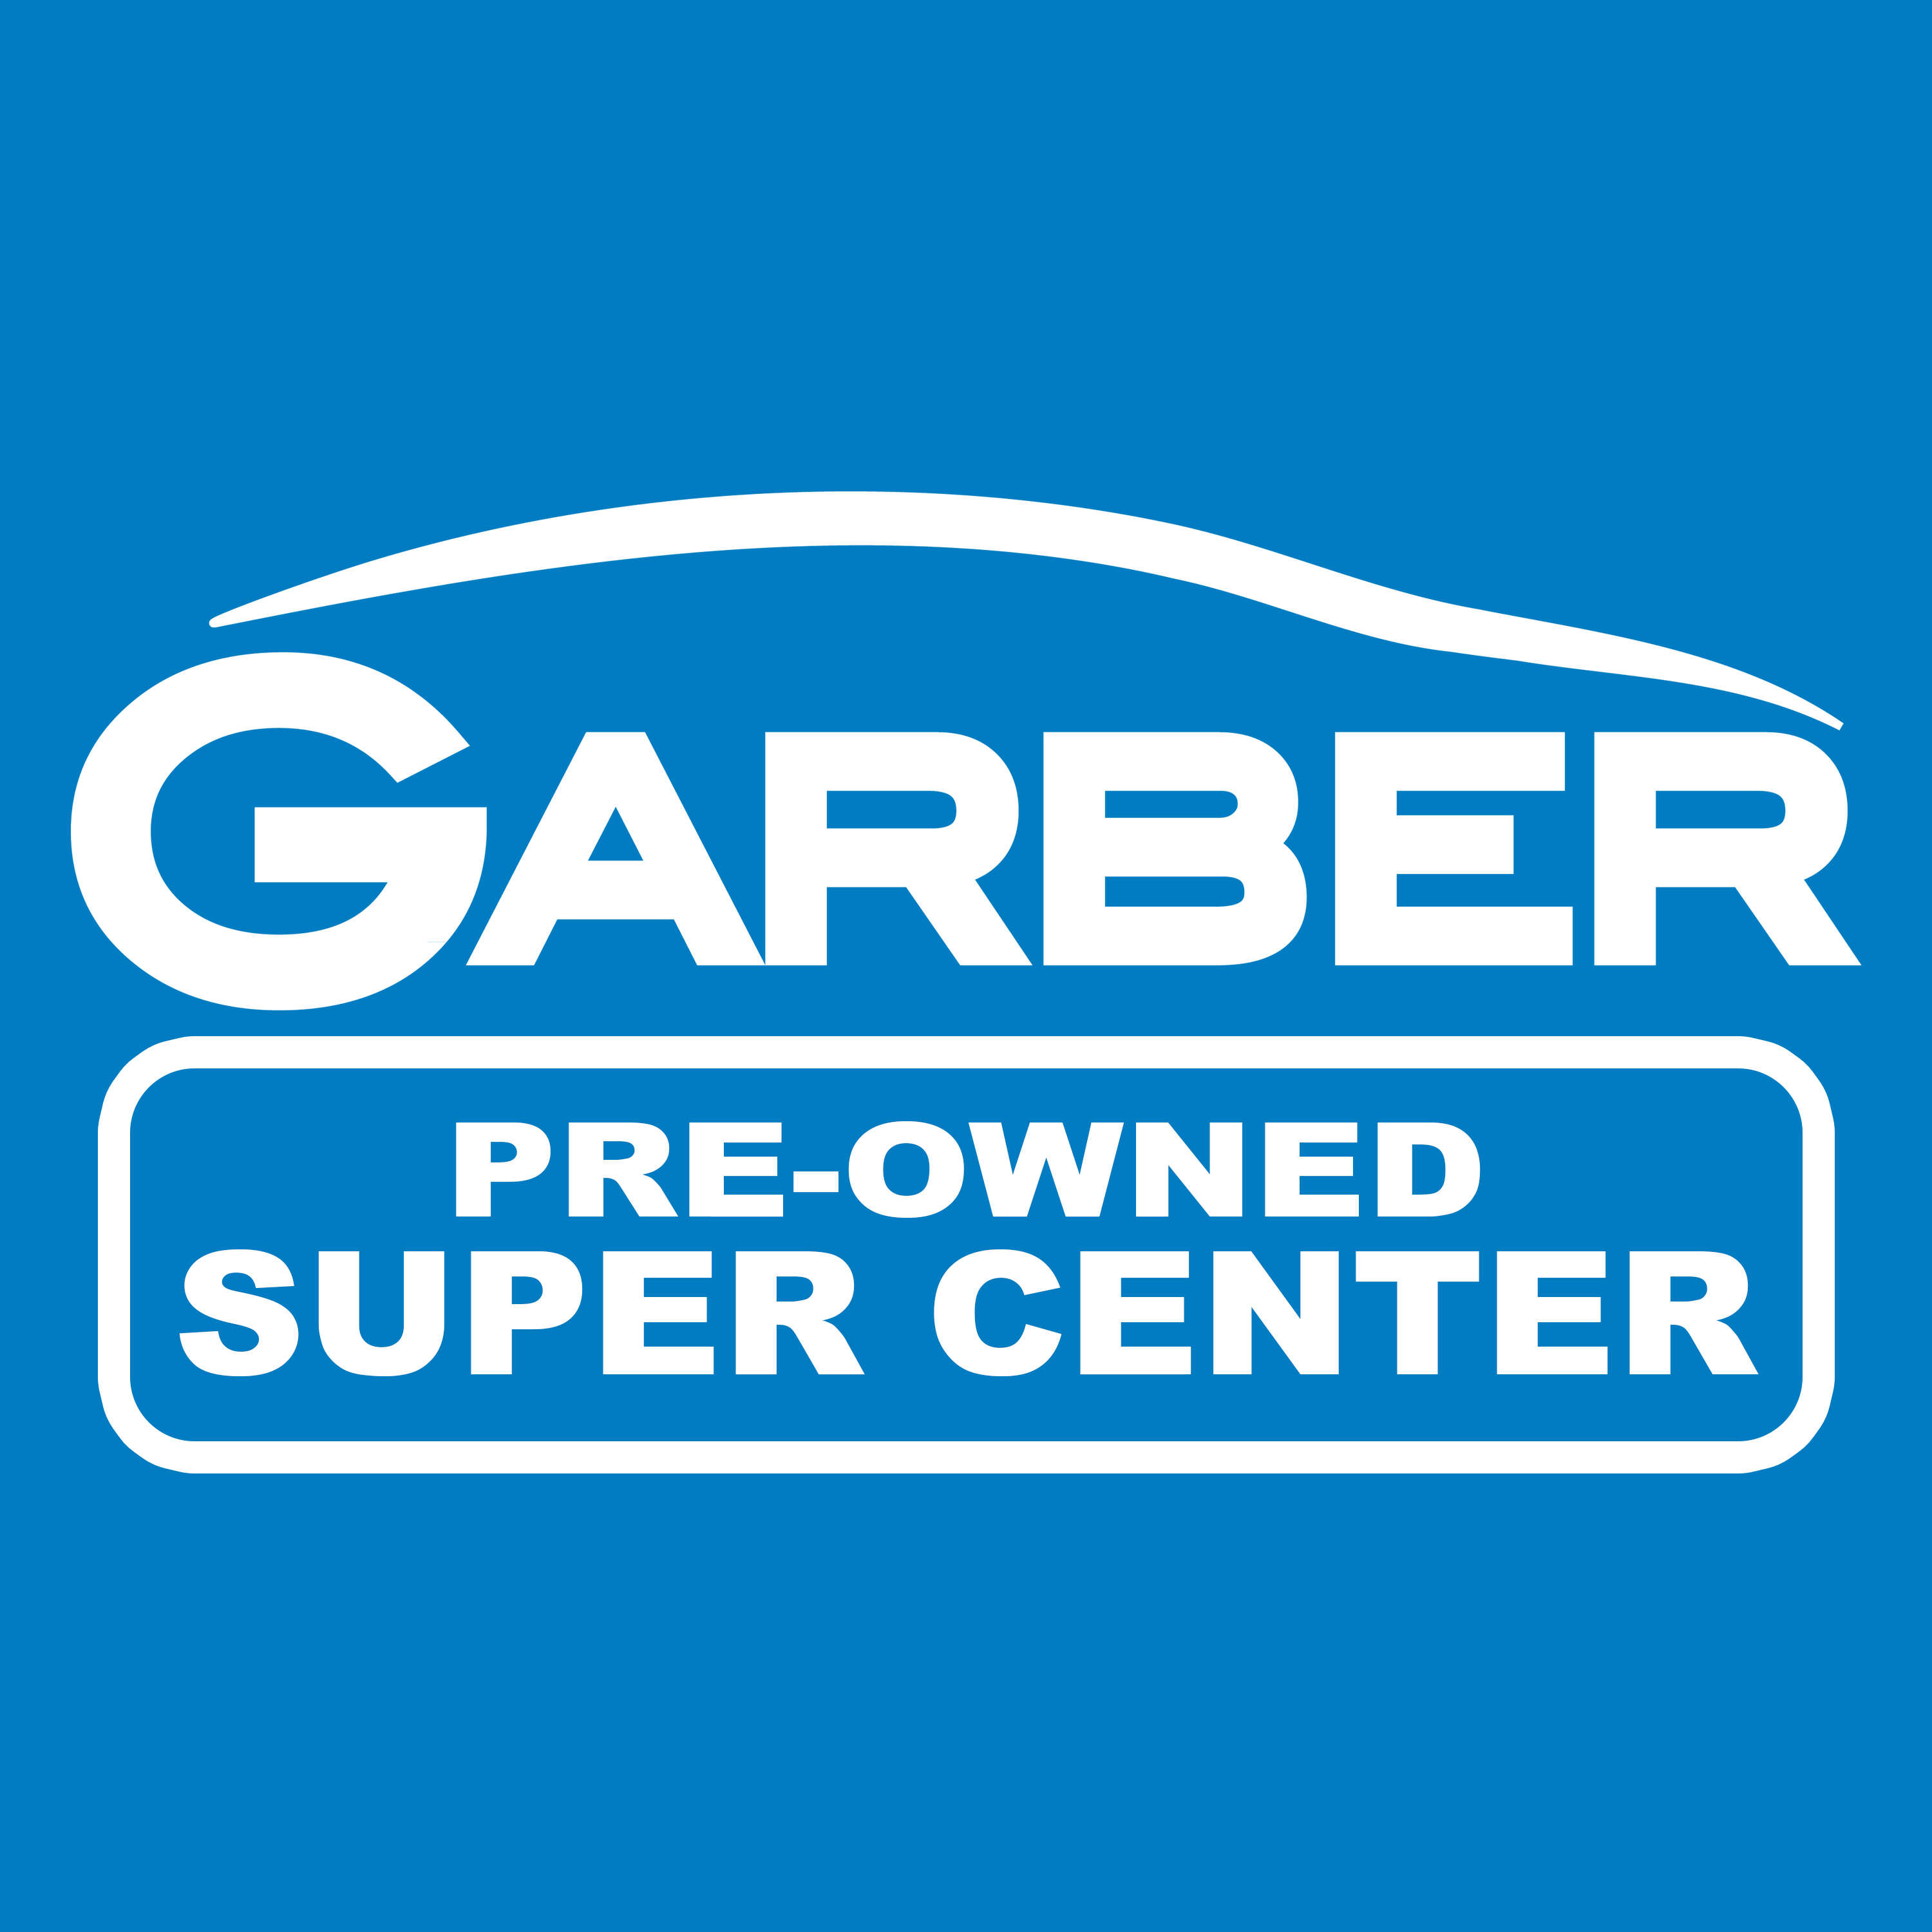 Garber Pre-Owned Super Center - Rochester, NY - Auto Dealers